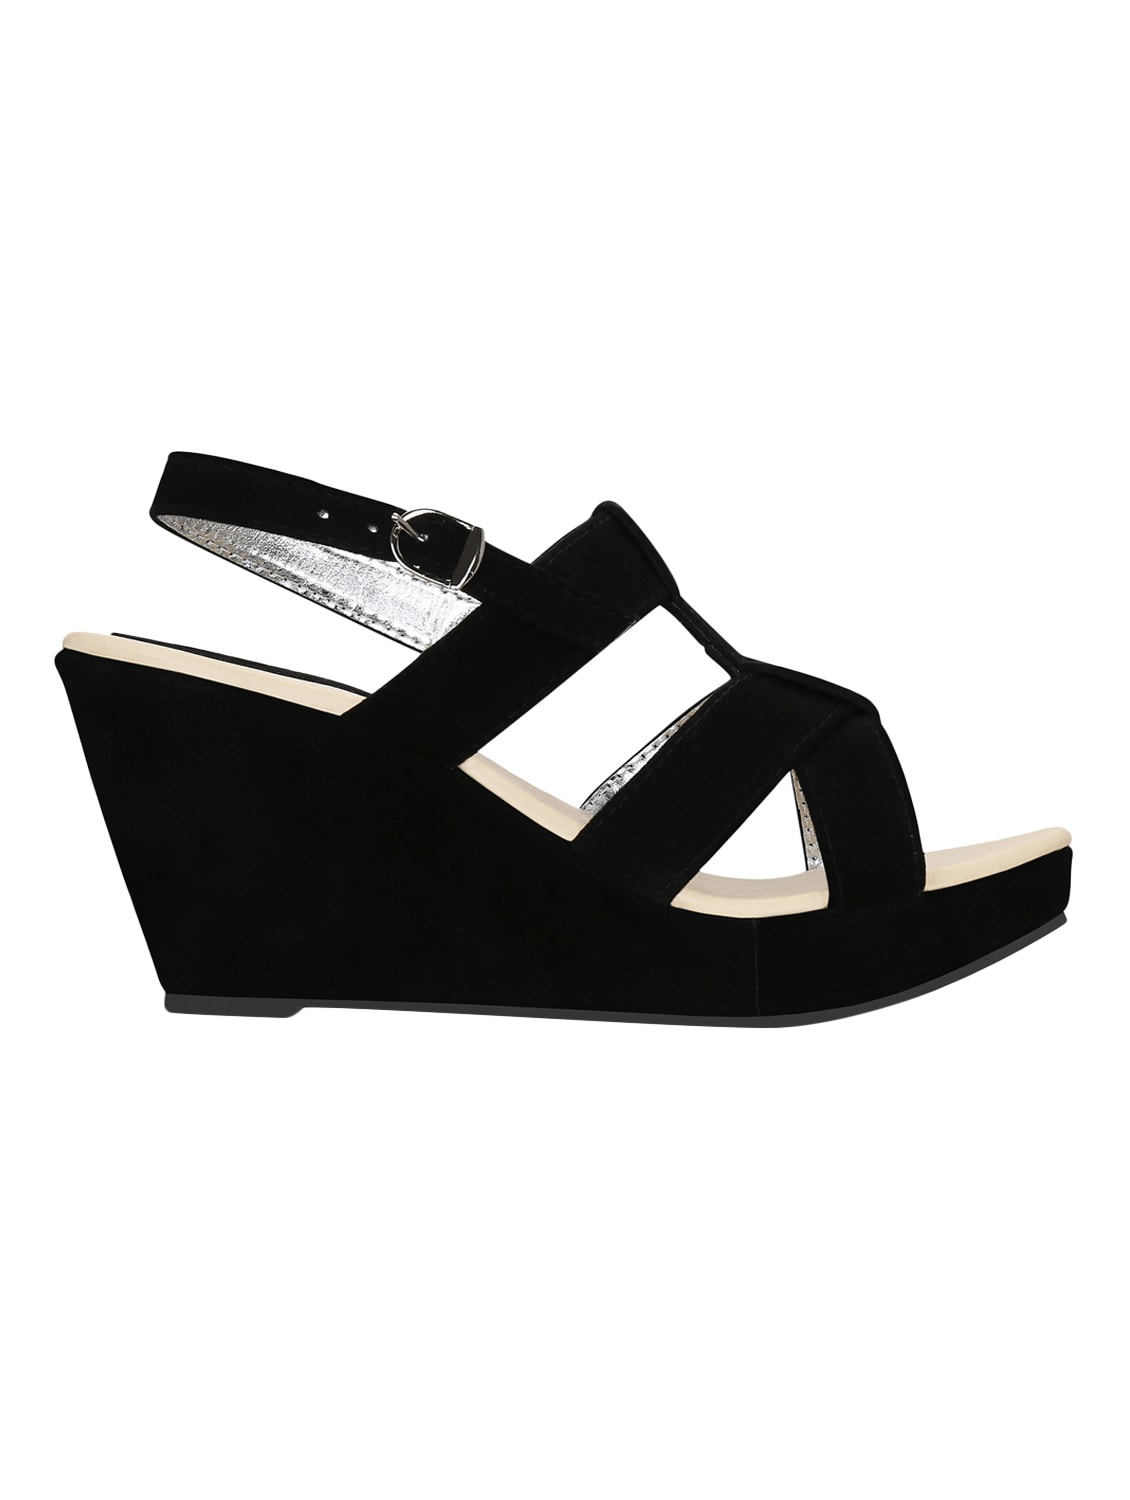 f980d9255bd0 Buy Kielz-black-wedge-sandals for Women from Kielz for ₹796 at 47% off